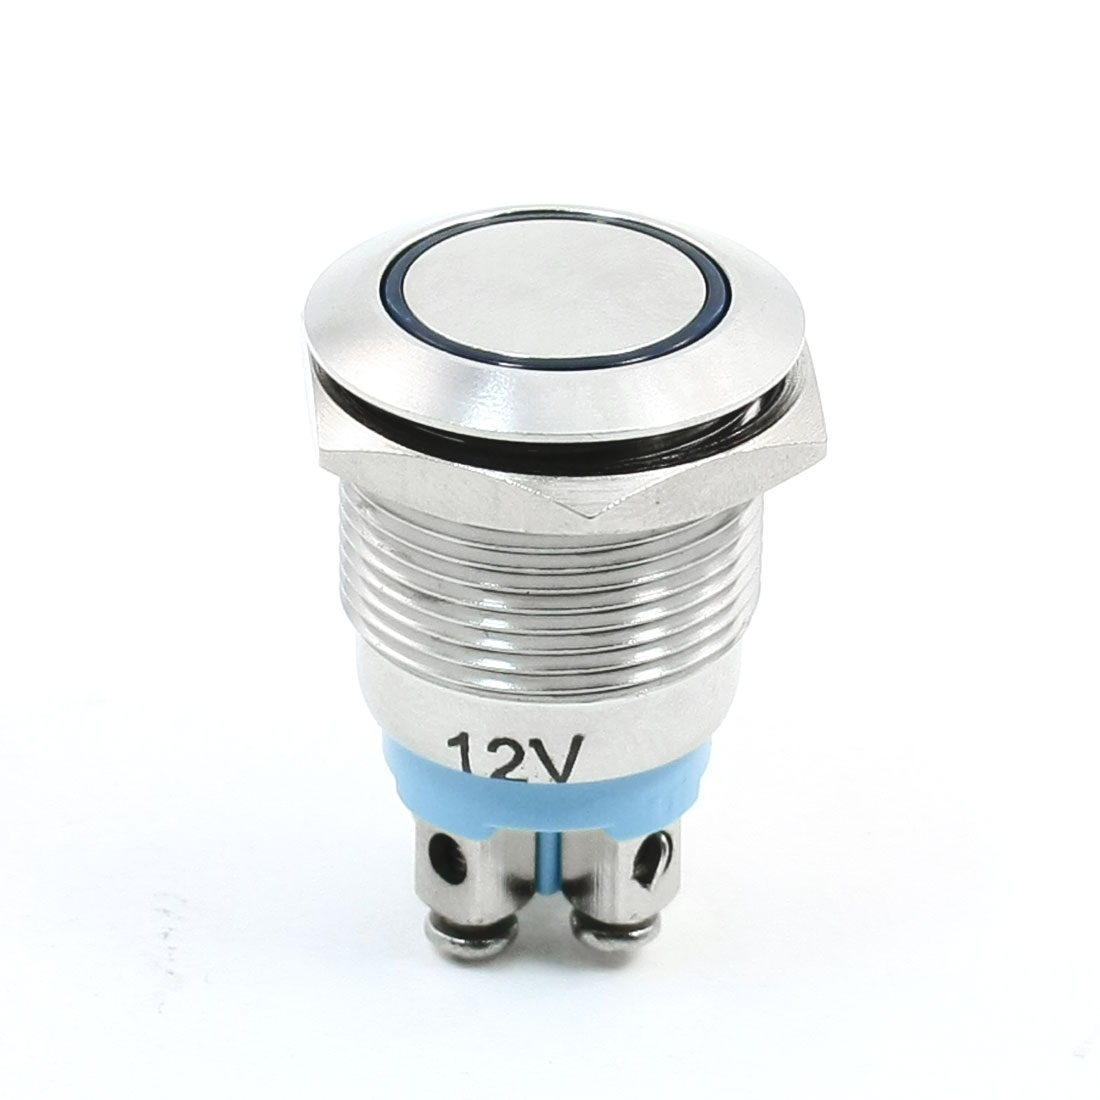 19mm 12VDC Blue Ring LED Lamp Momentary Stainless Steel Push Button Switch 1NO